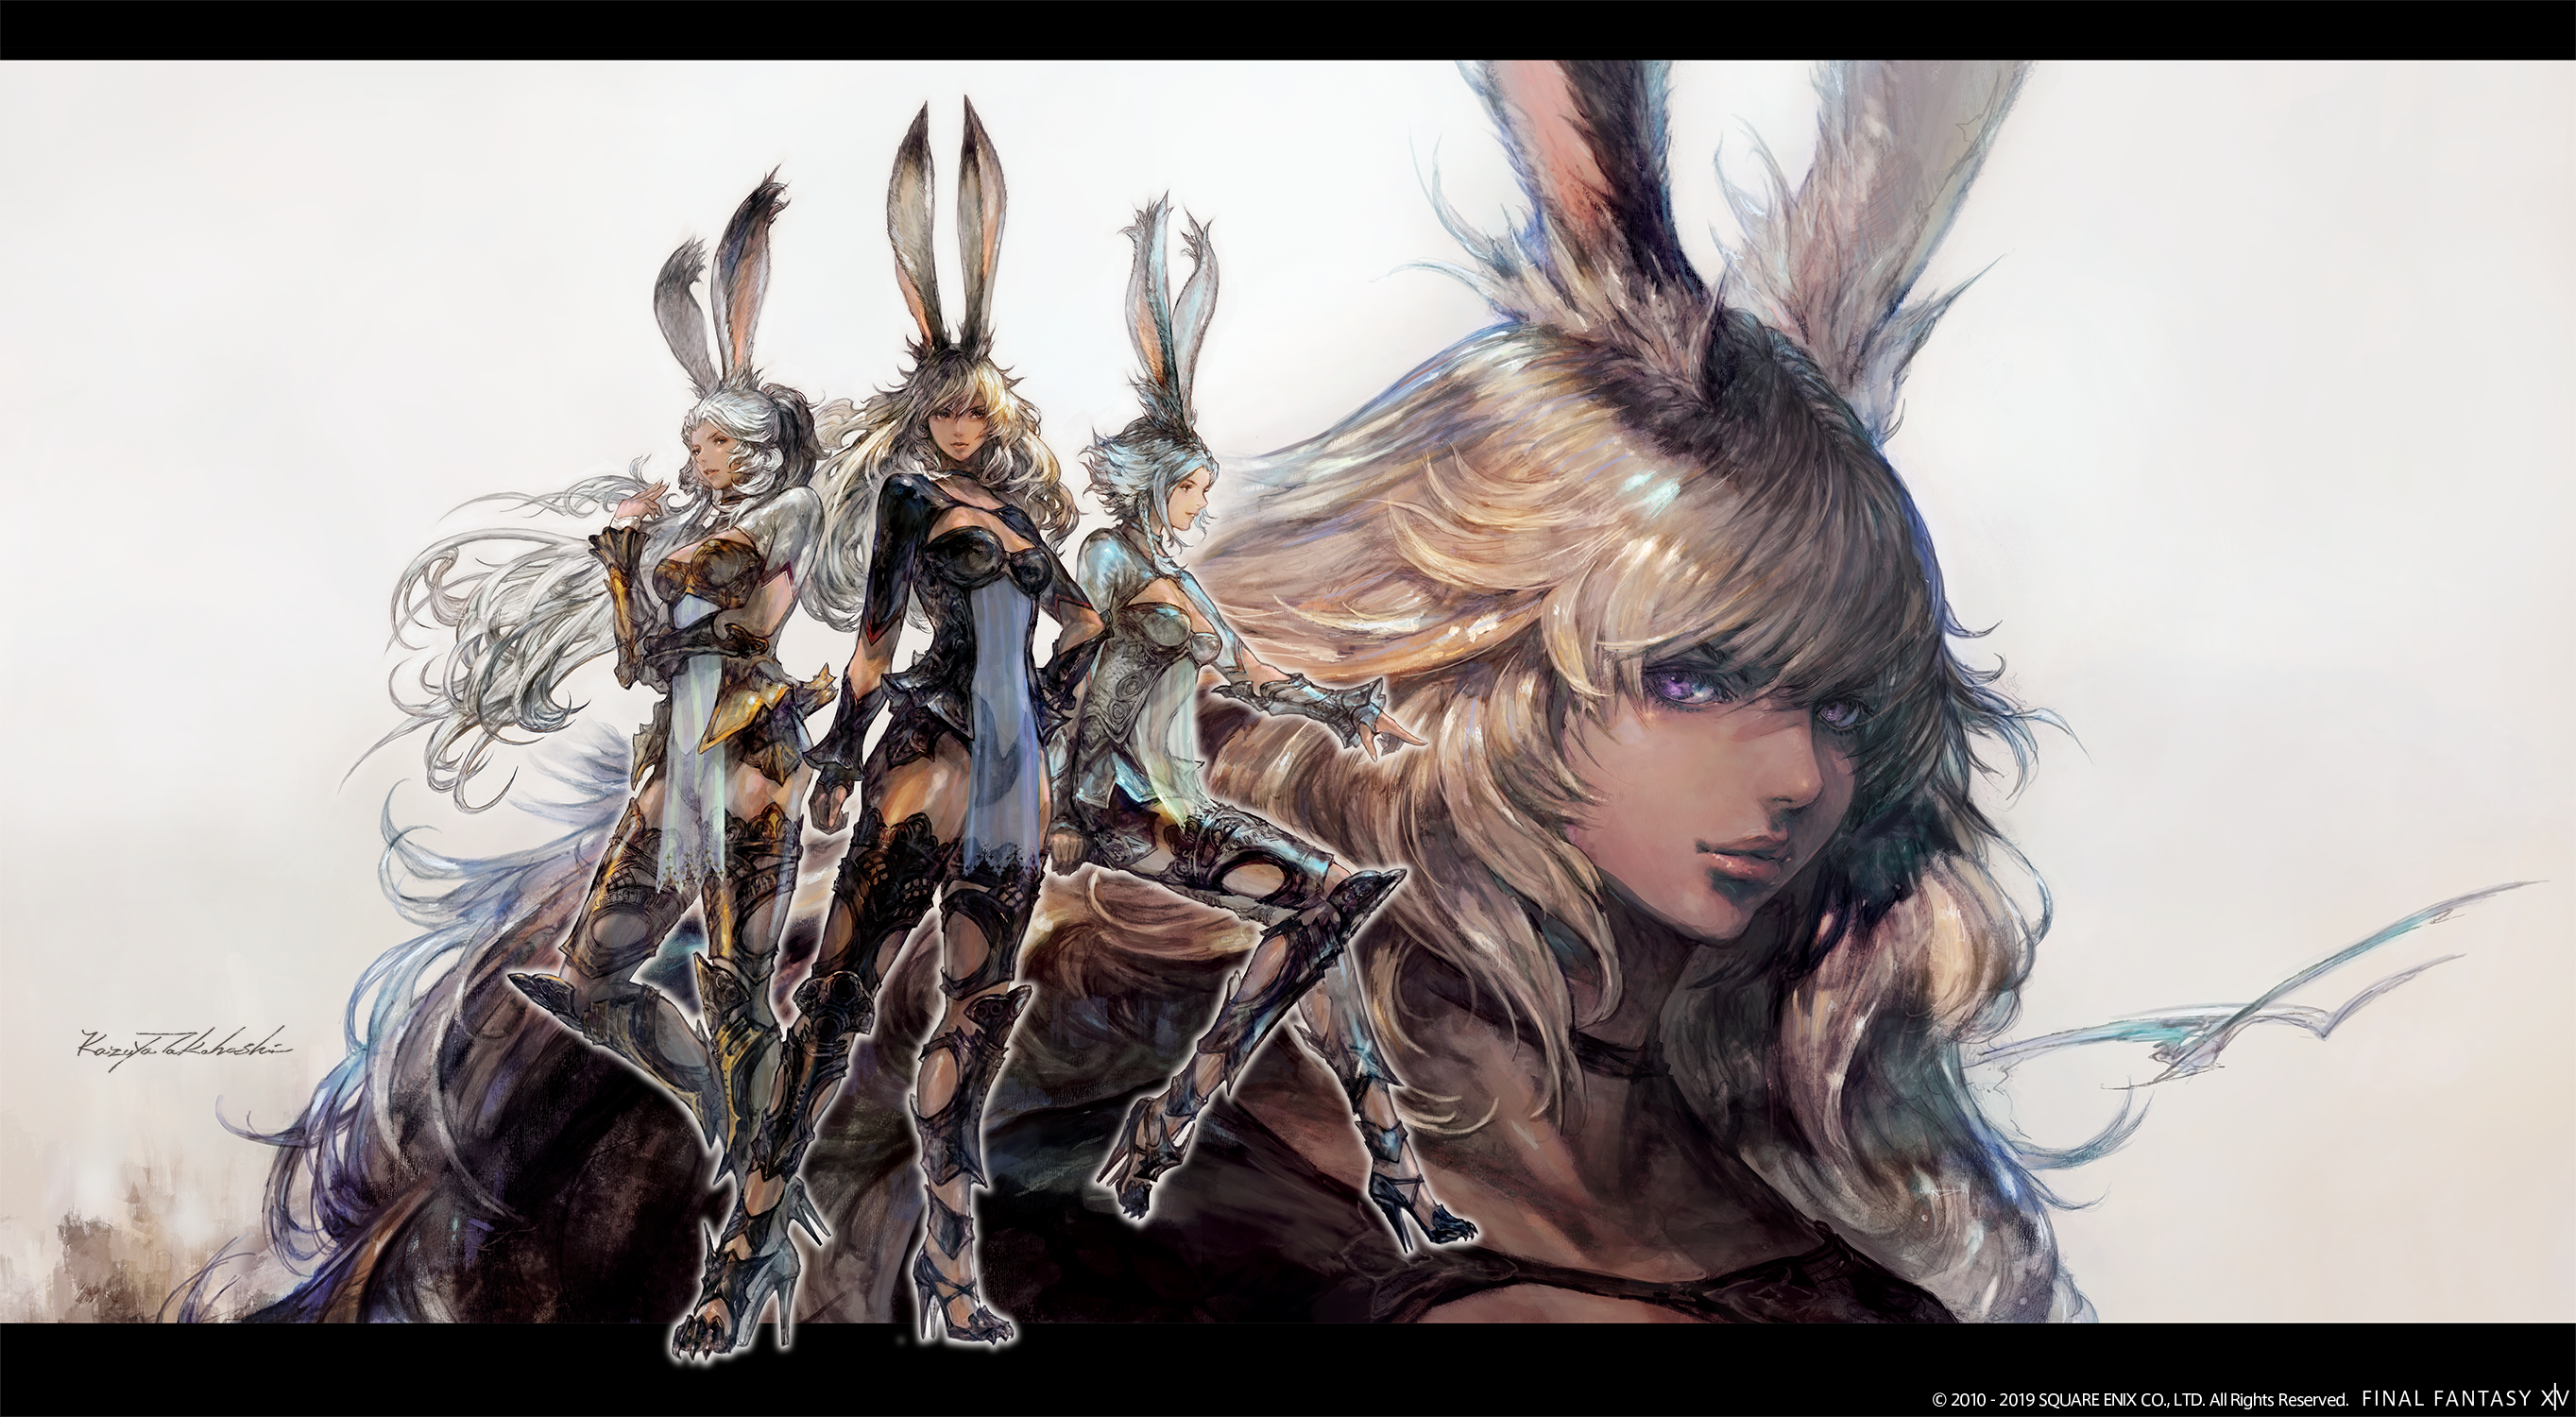 Final Fantasy XIV FanFest shows off new job, playable race, and